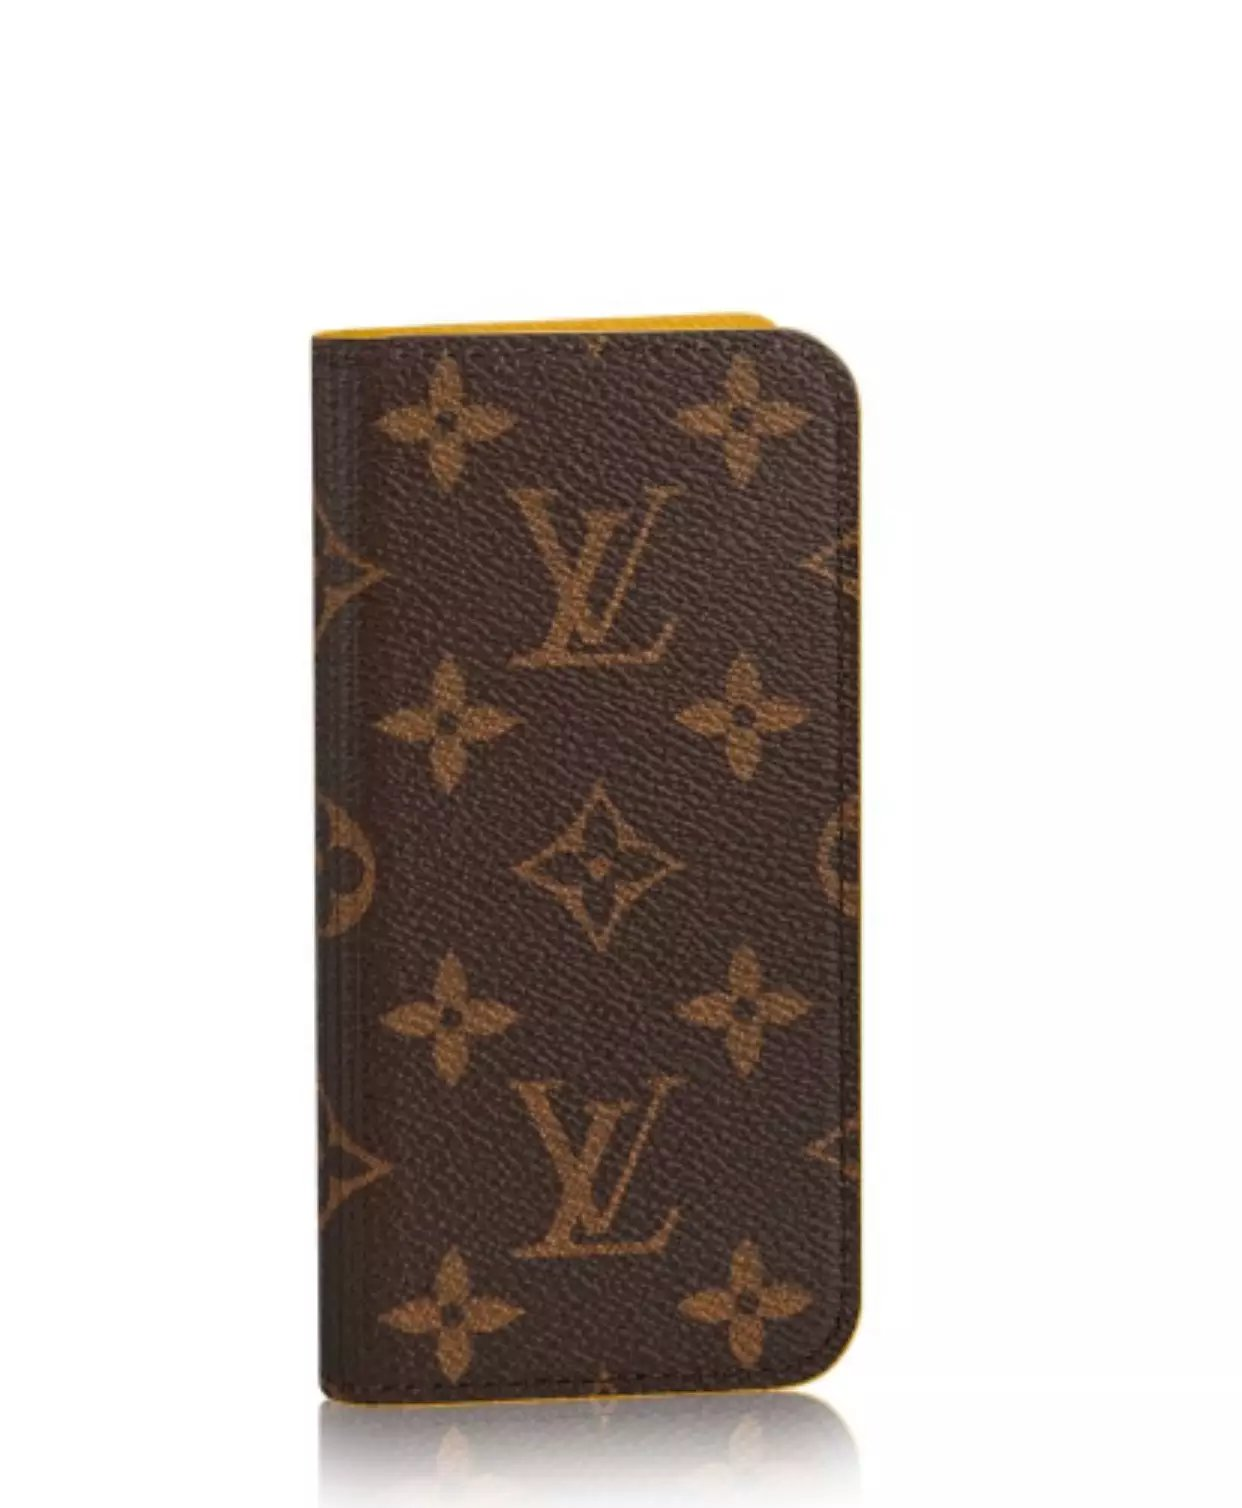 iphone 8 Plus fashion cases iphone covers for 8 Plus Louis Vuitton iphone 8 Plus case iphone 8 Plus covers designer iphone 8 Plus phone covers cool phone cases for iPhone 8 Plus 8 Plus cases i phone 8 Plus phone cases mobile phone covers store